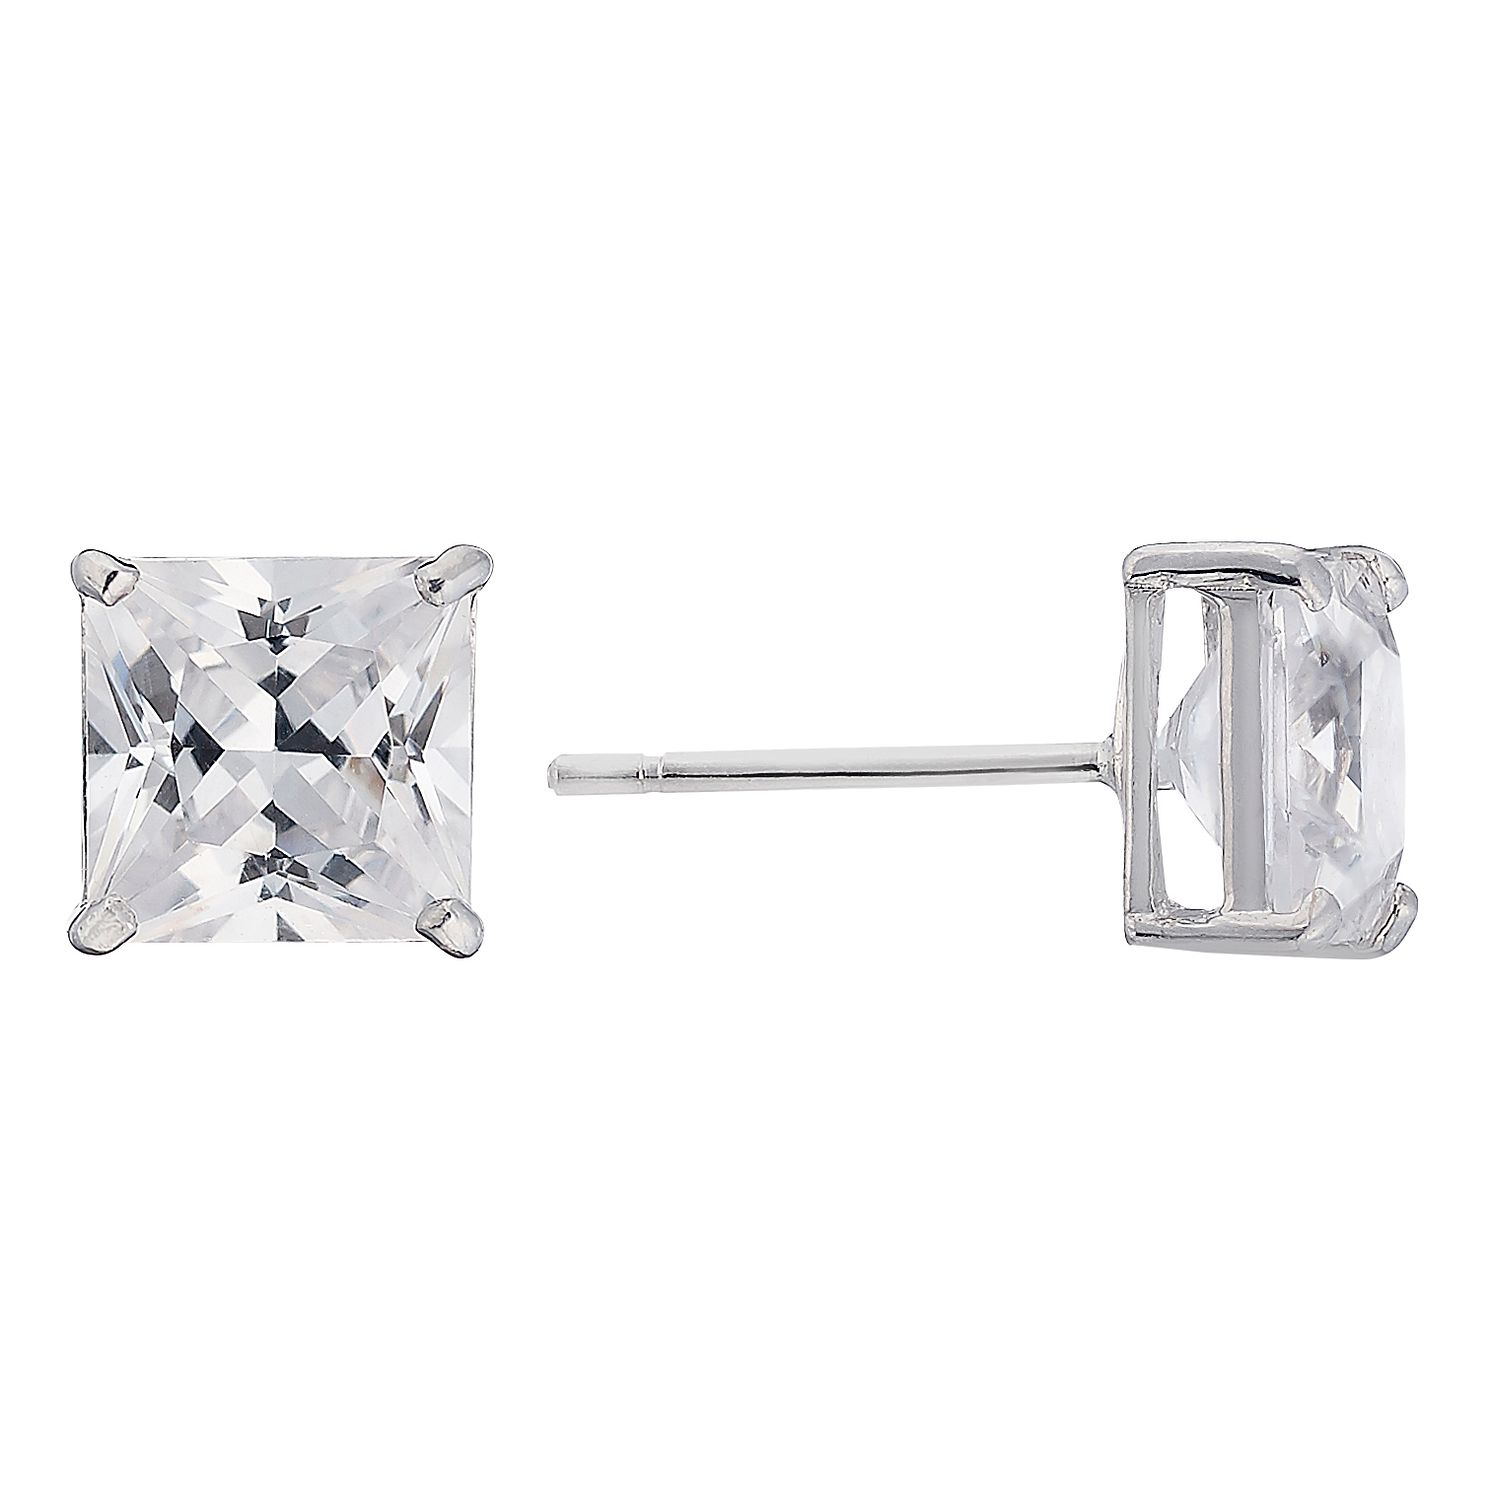 9ct White Gold Cubic Zirconia Square 6mm Stud Earrings - Product number 2247348